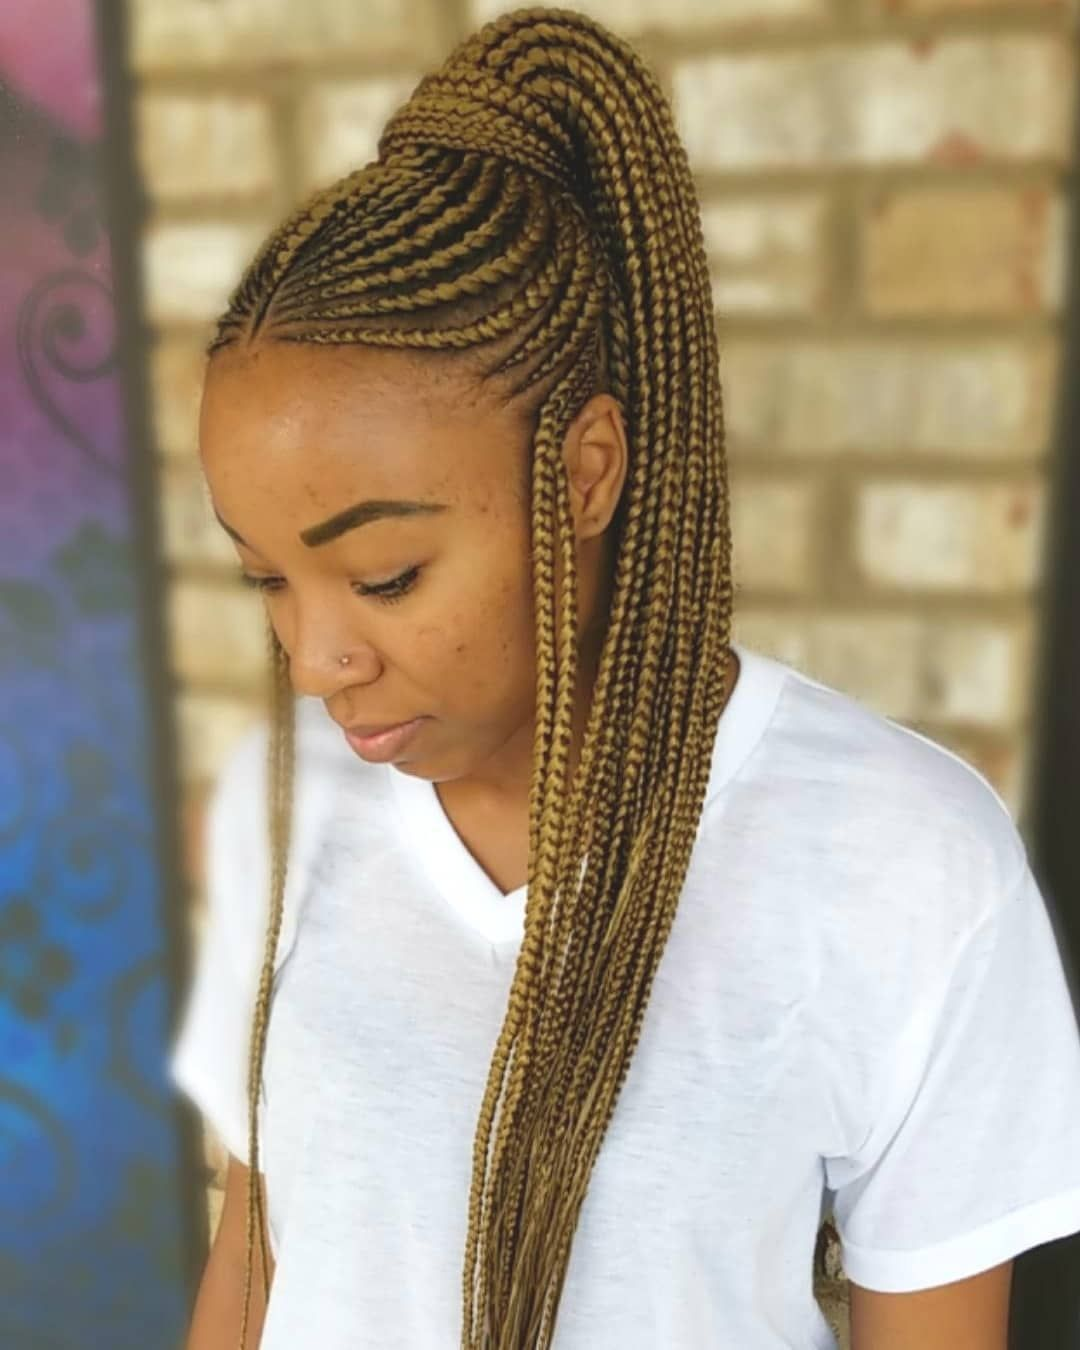 15 Latest 96 Tree Braid Hairstyles That Will Get You Back To Nature In 2020 Braided Hairstyles Tree Braids Hairstyles Black Hair Types